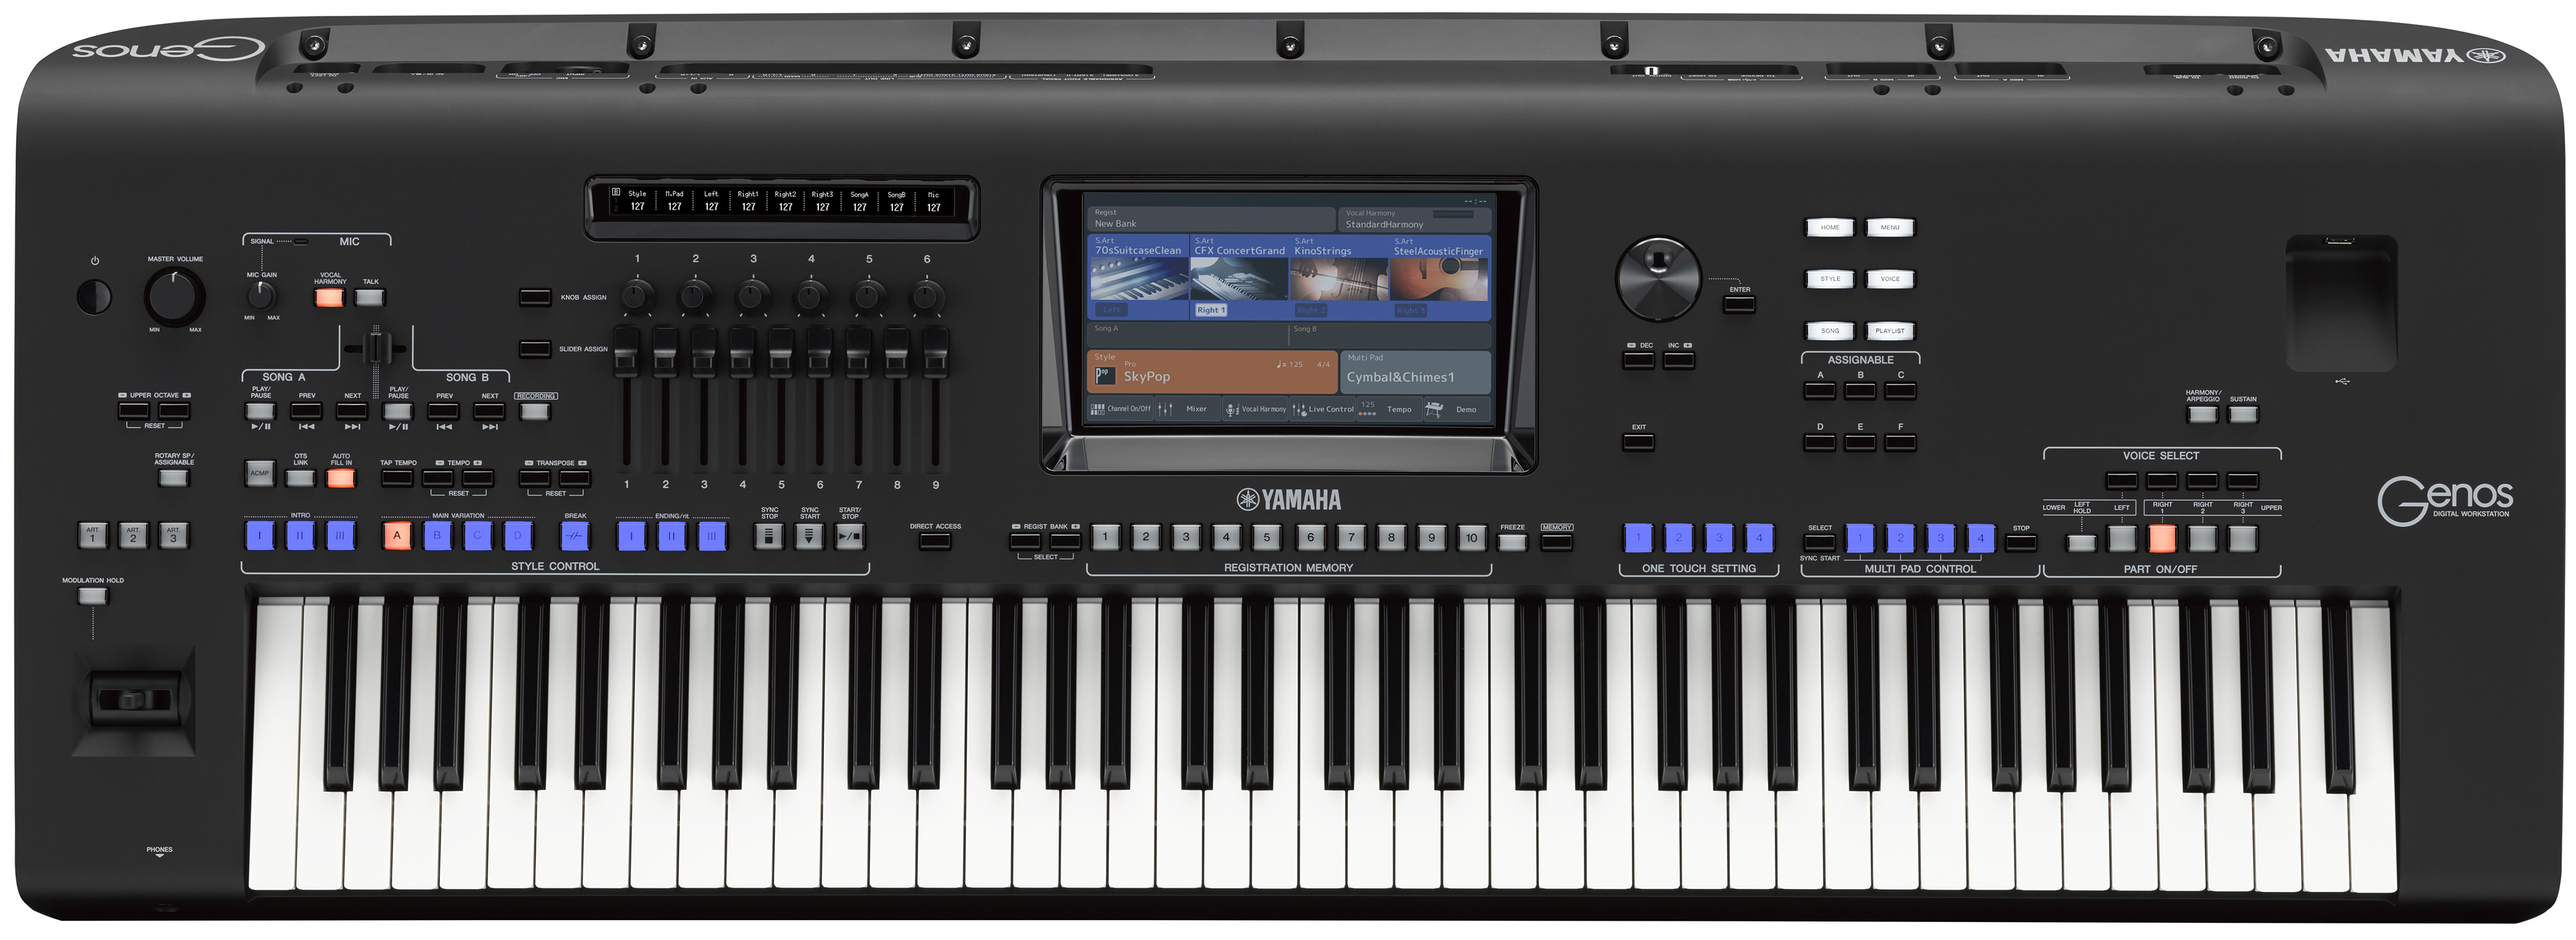 East anglia 39 s premier music store allens music centre for Certified yamaha outboard service near me